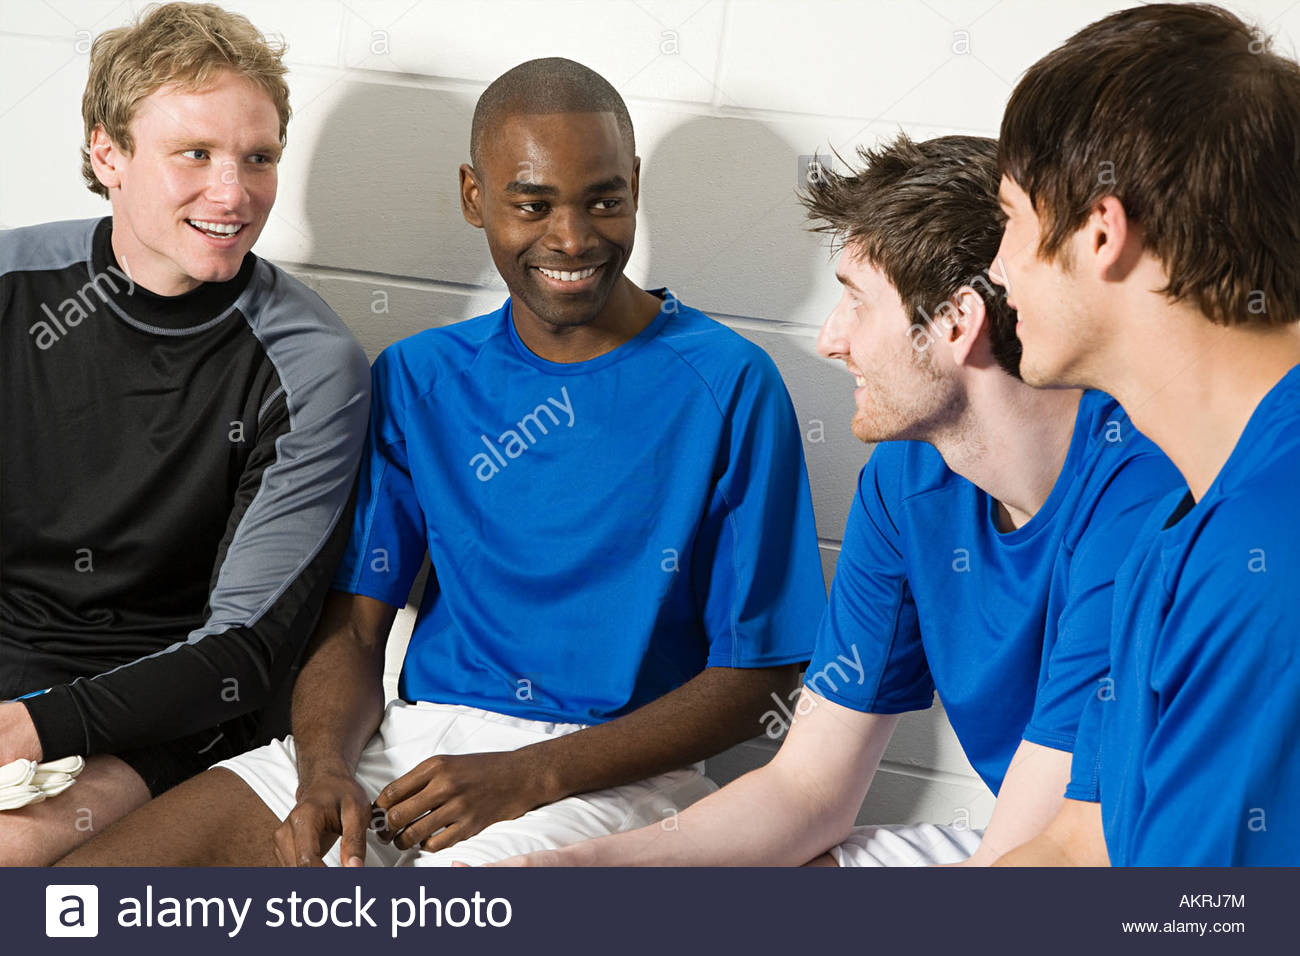 A football team talking in changing rooms - Stock Image